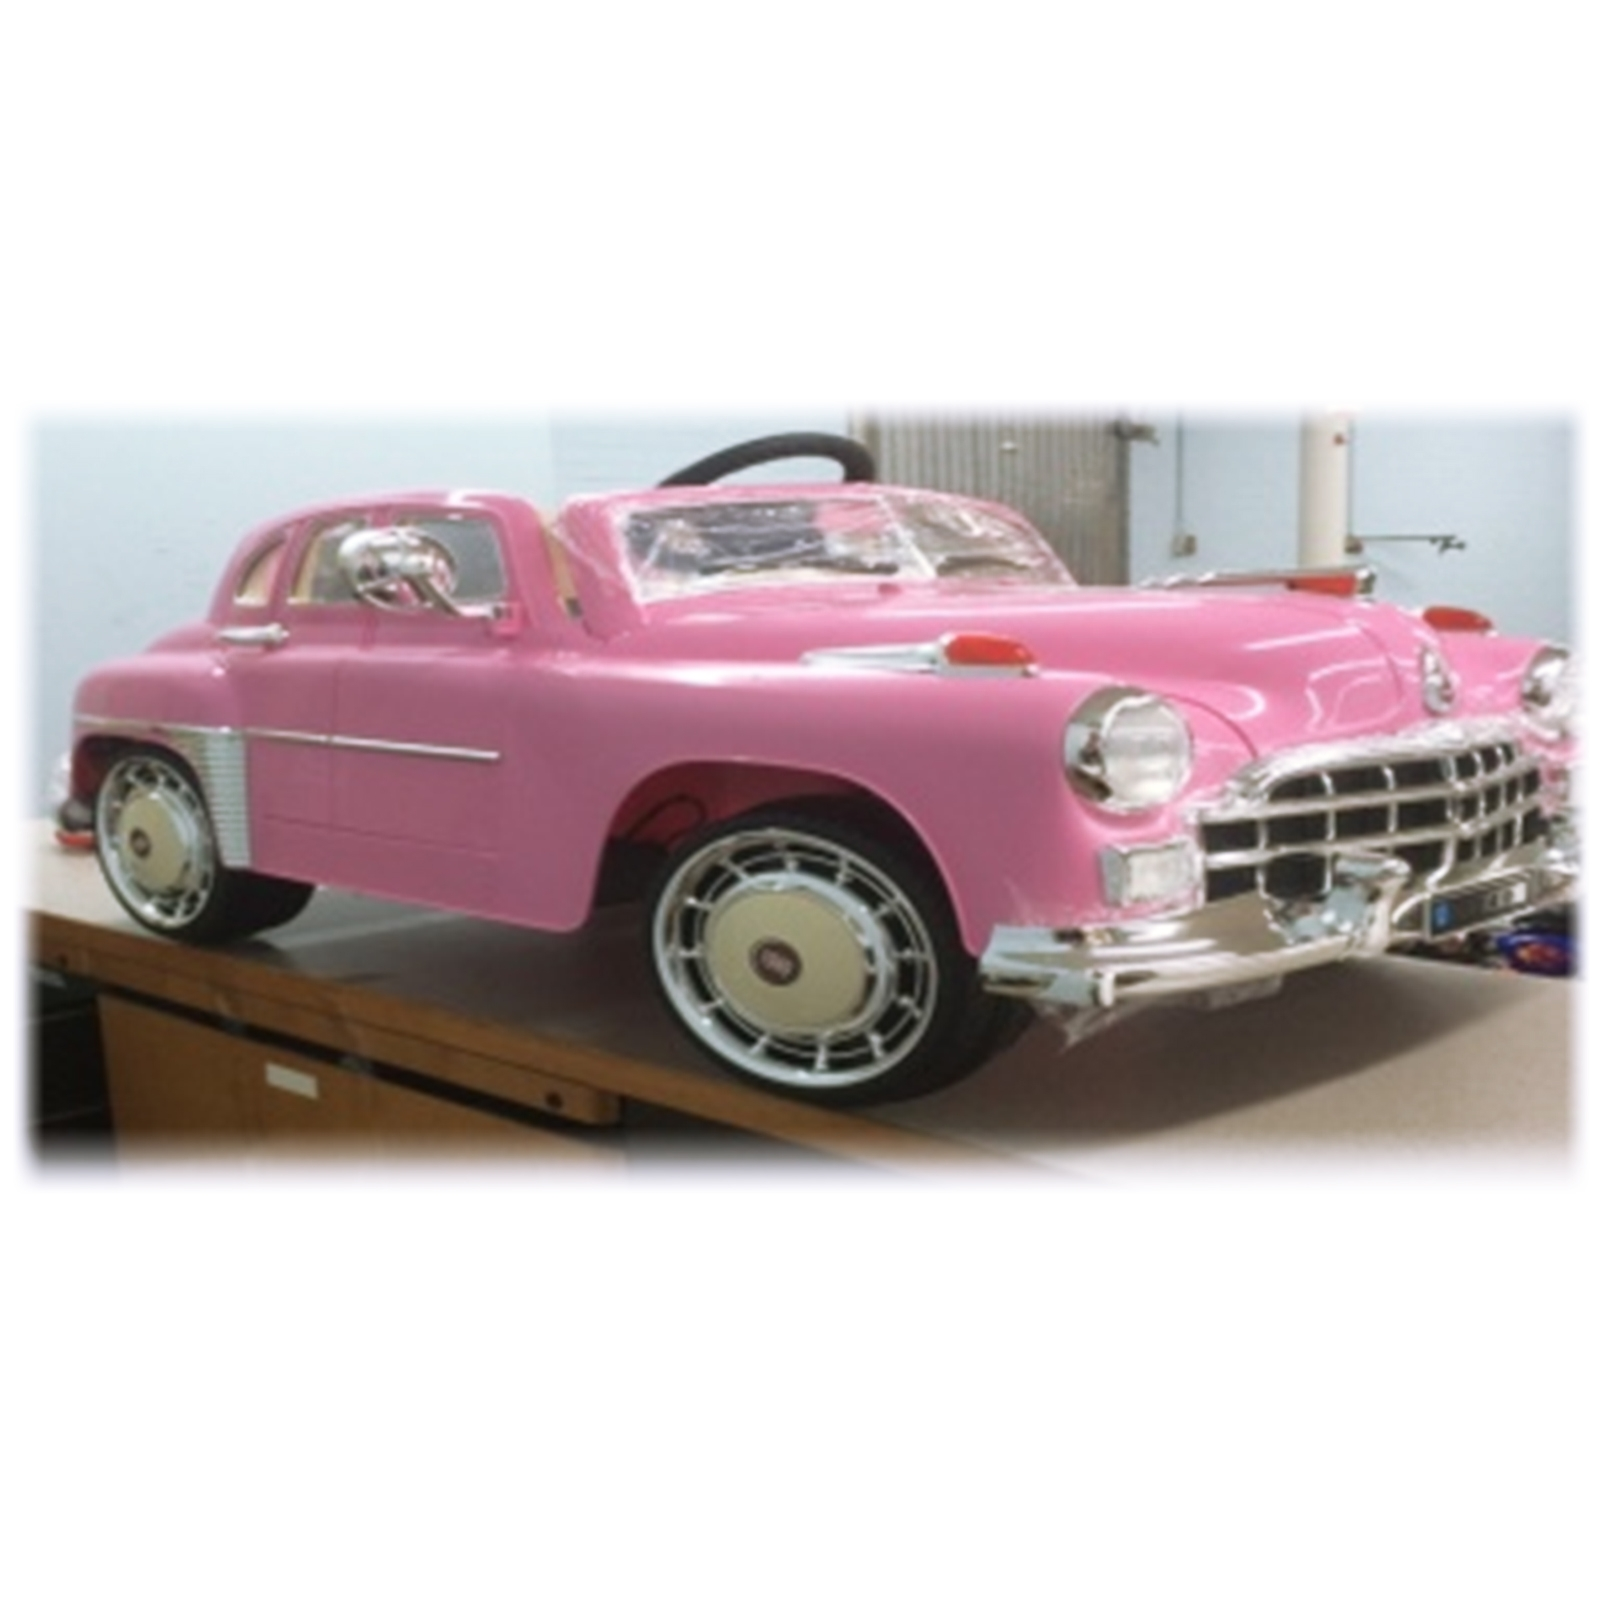 1949 Classic Kids Battery Powered Ride On Car - Pink